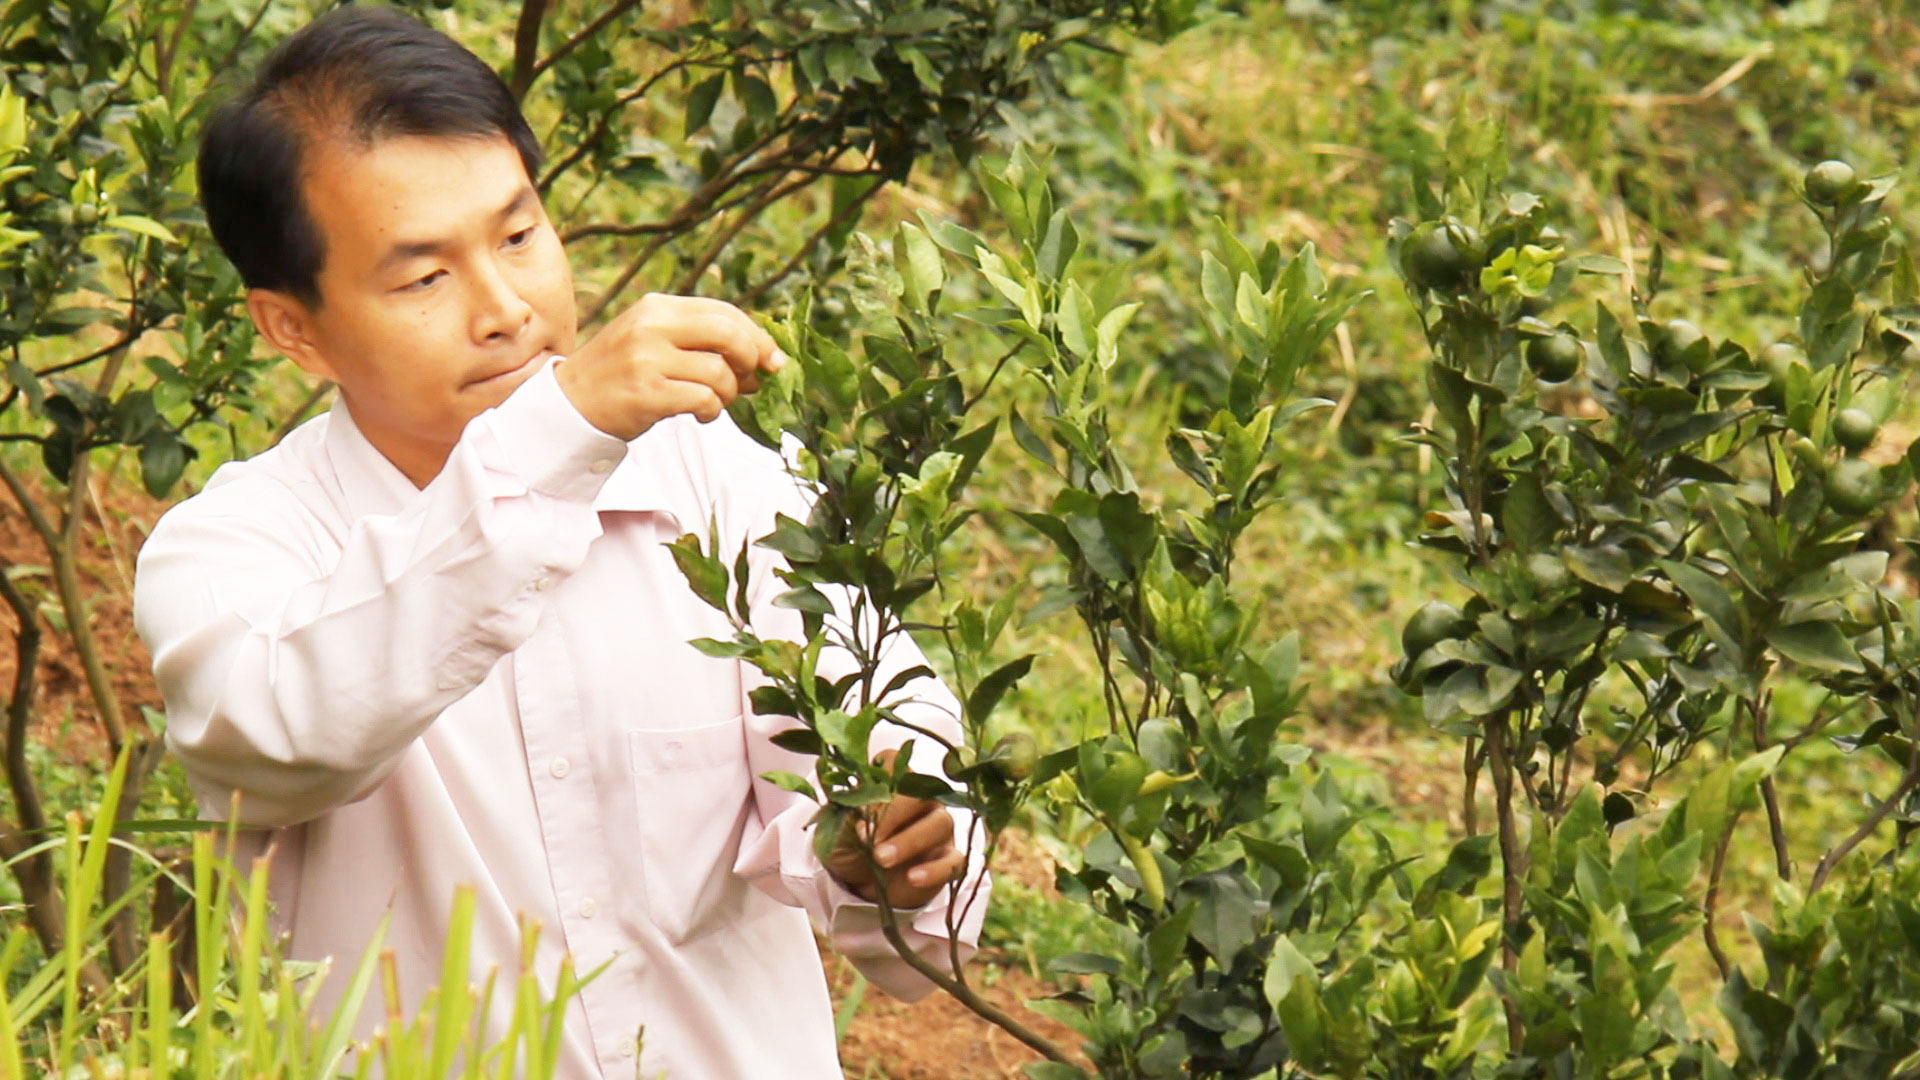 Agribusiness model: 'No green agriculture, no agro-eco tourism'